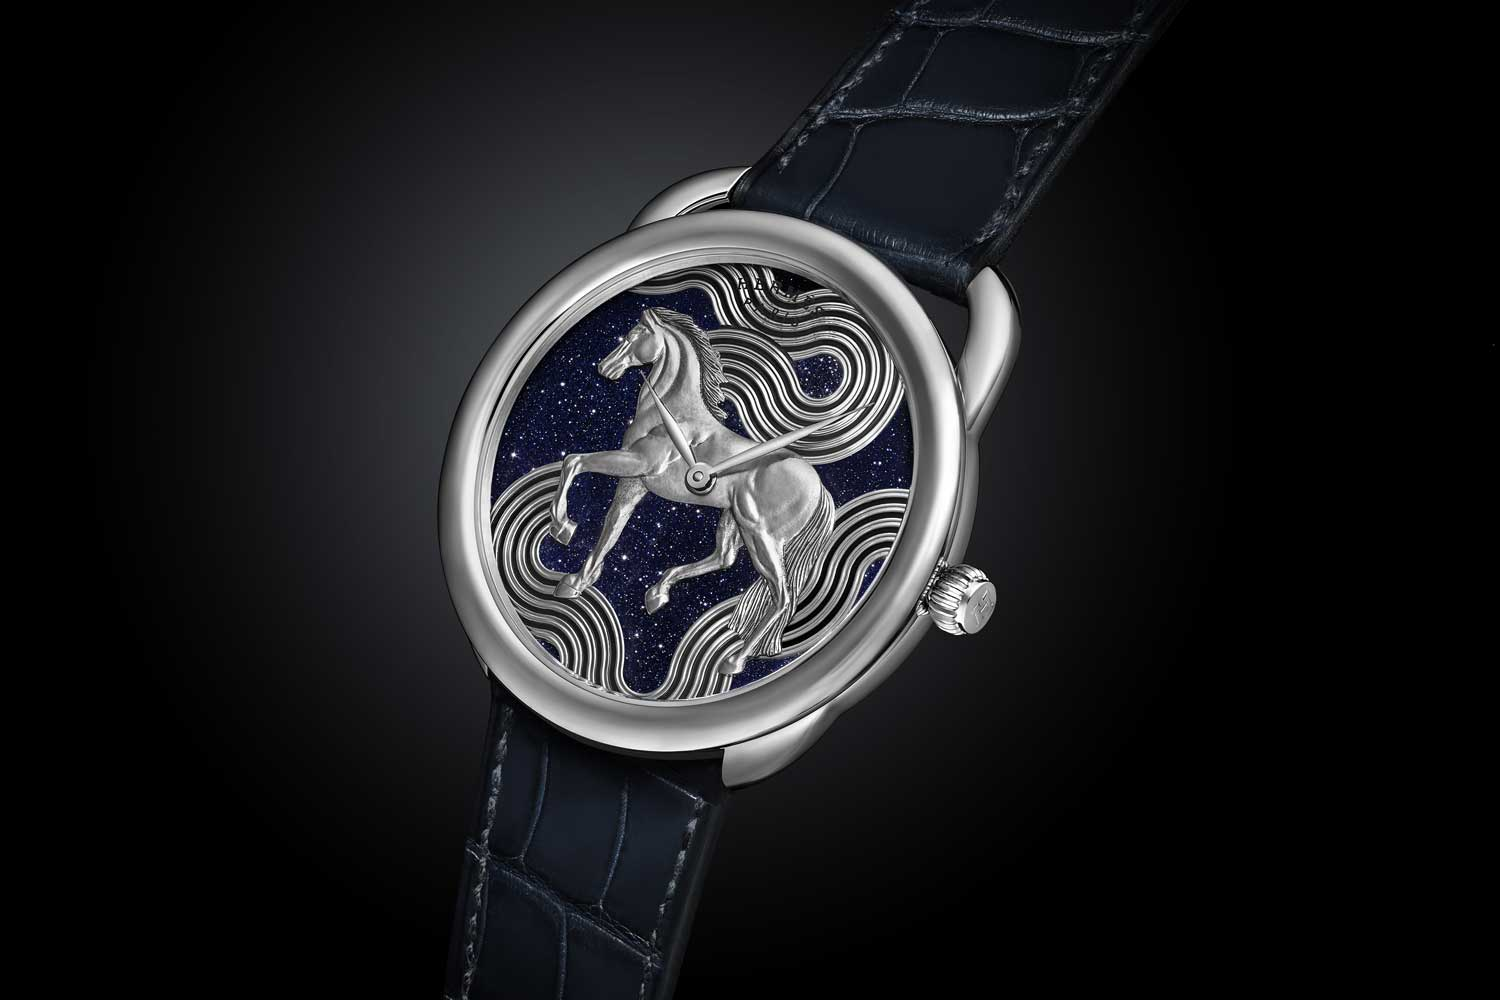 The Hermès Arceau Cheval Cosmique in aventurine dial.